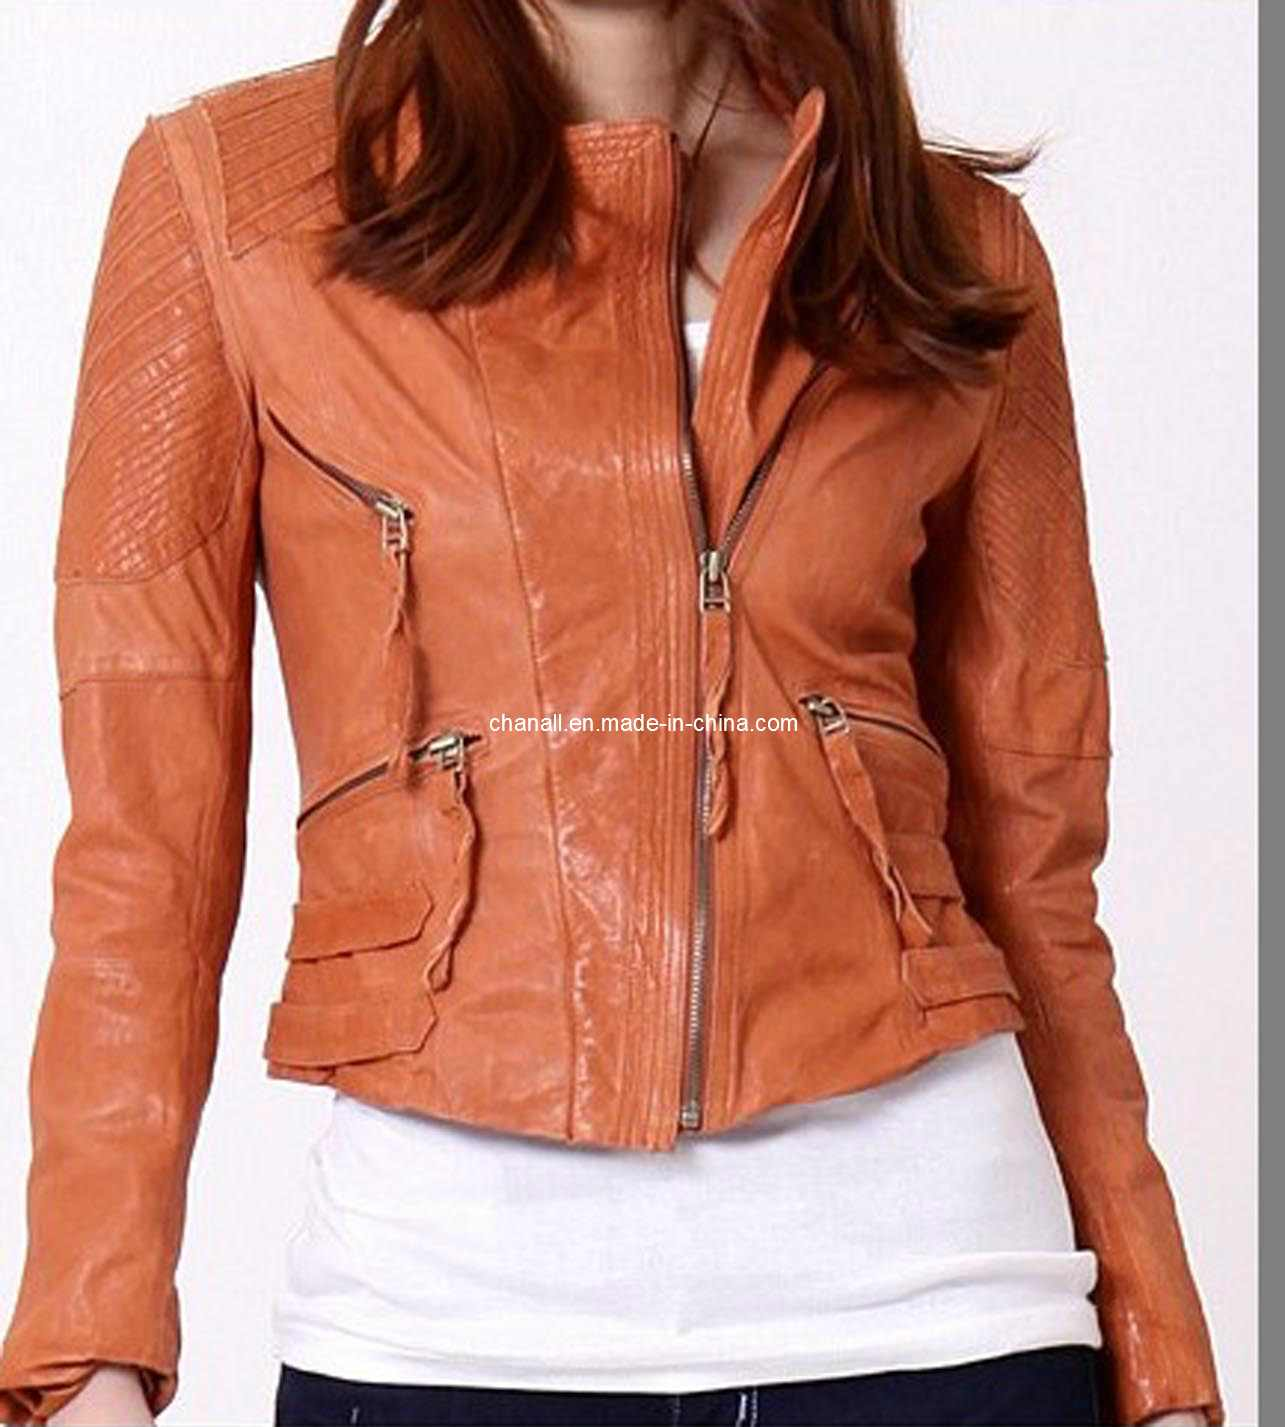 leather jackets for women 2013